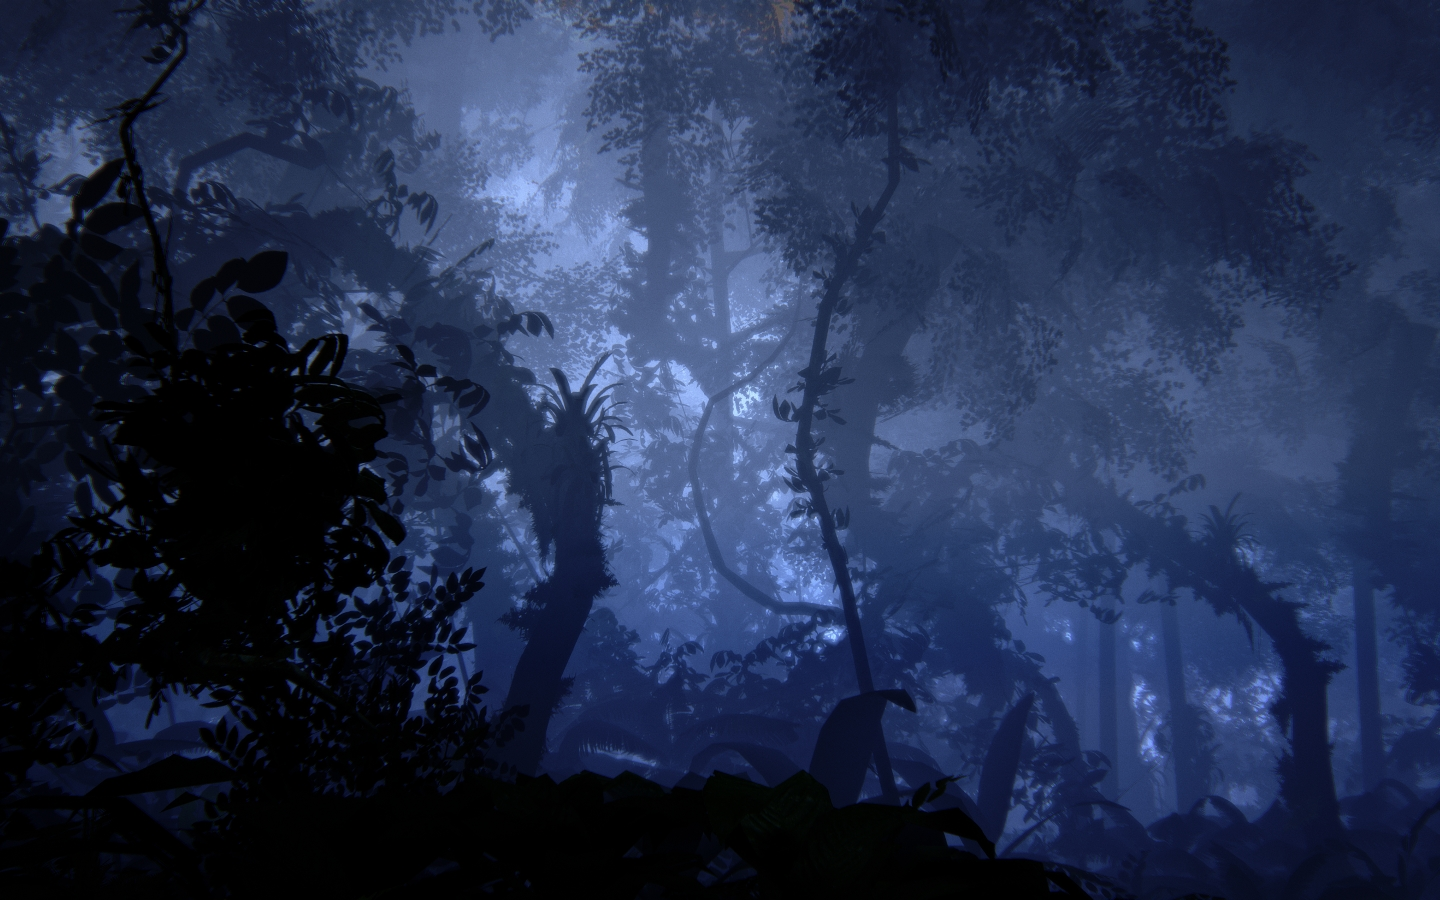 unreal-engine-4-forest-8